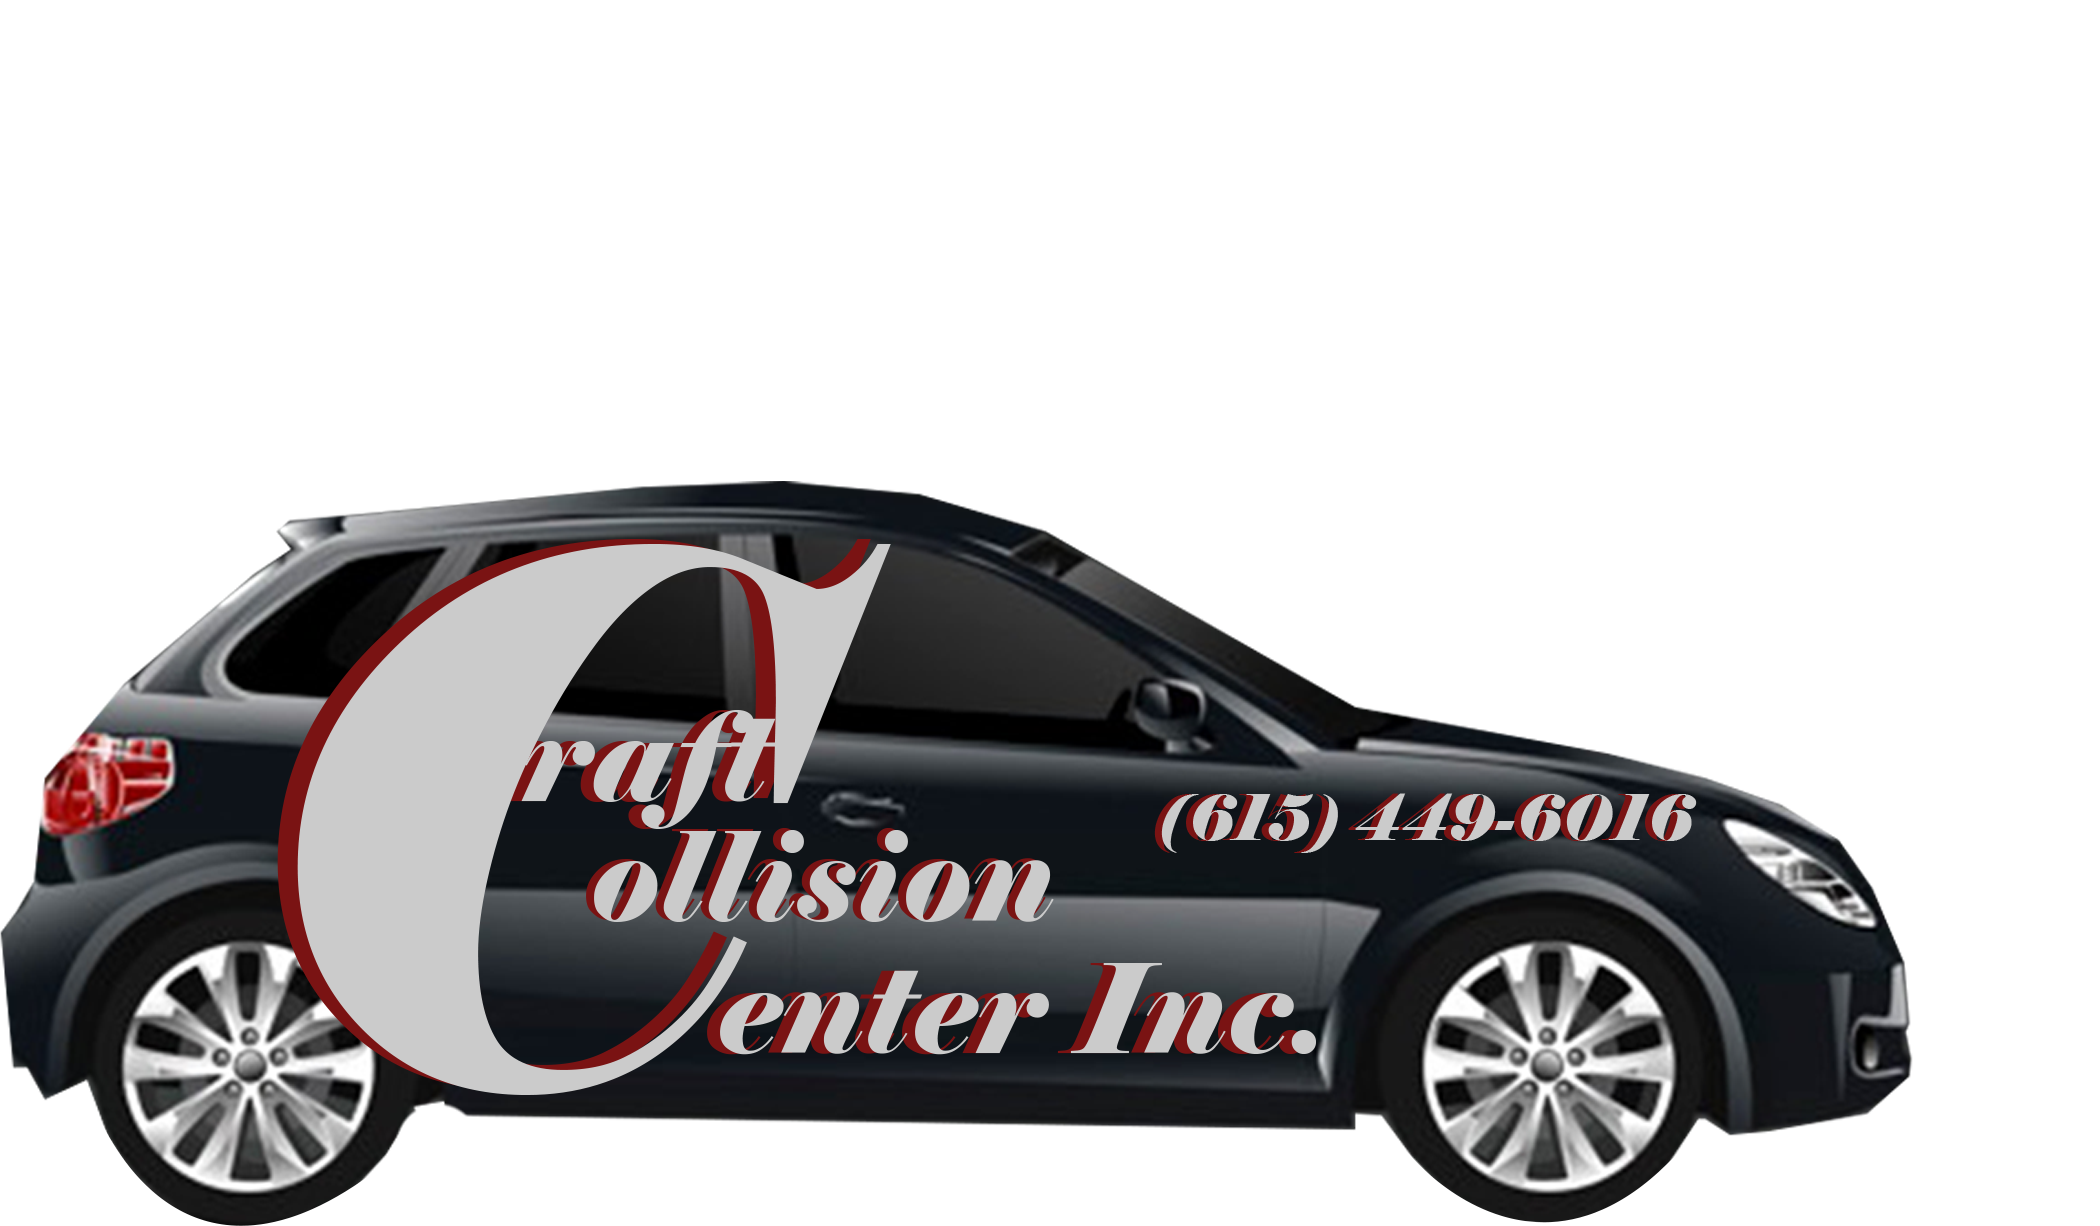 Craft Collision Center Inc. Logo